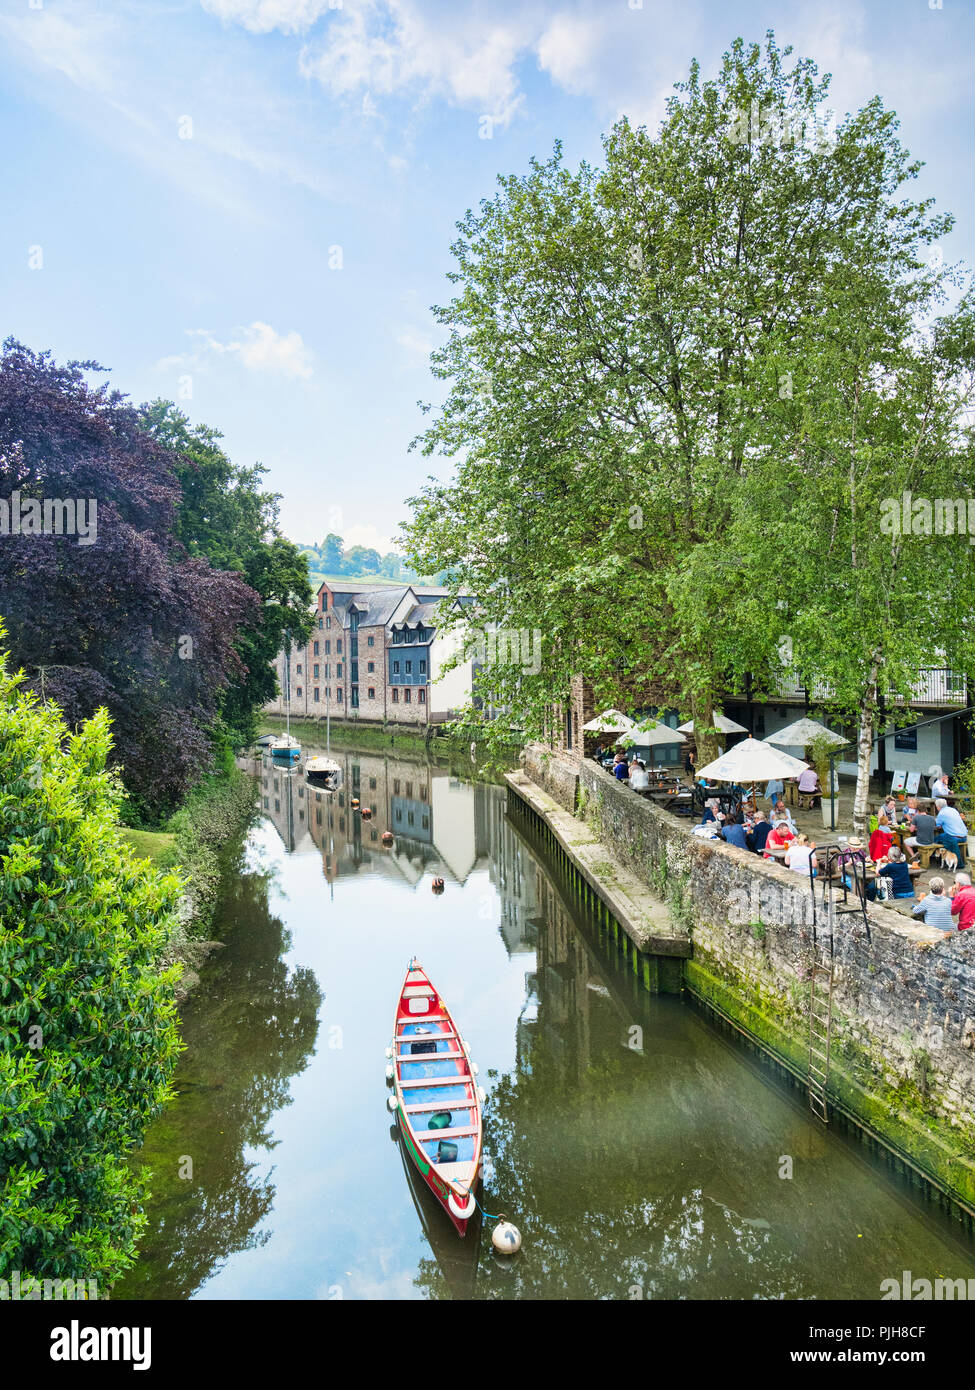 25 May 2018: Totnes Devon UK - Trees and people at a restaurant beside the River Dart. Stock Photo